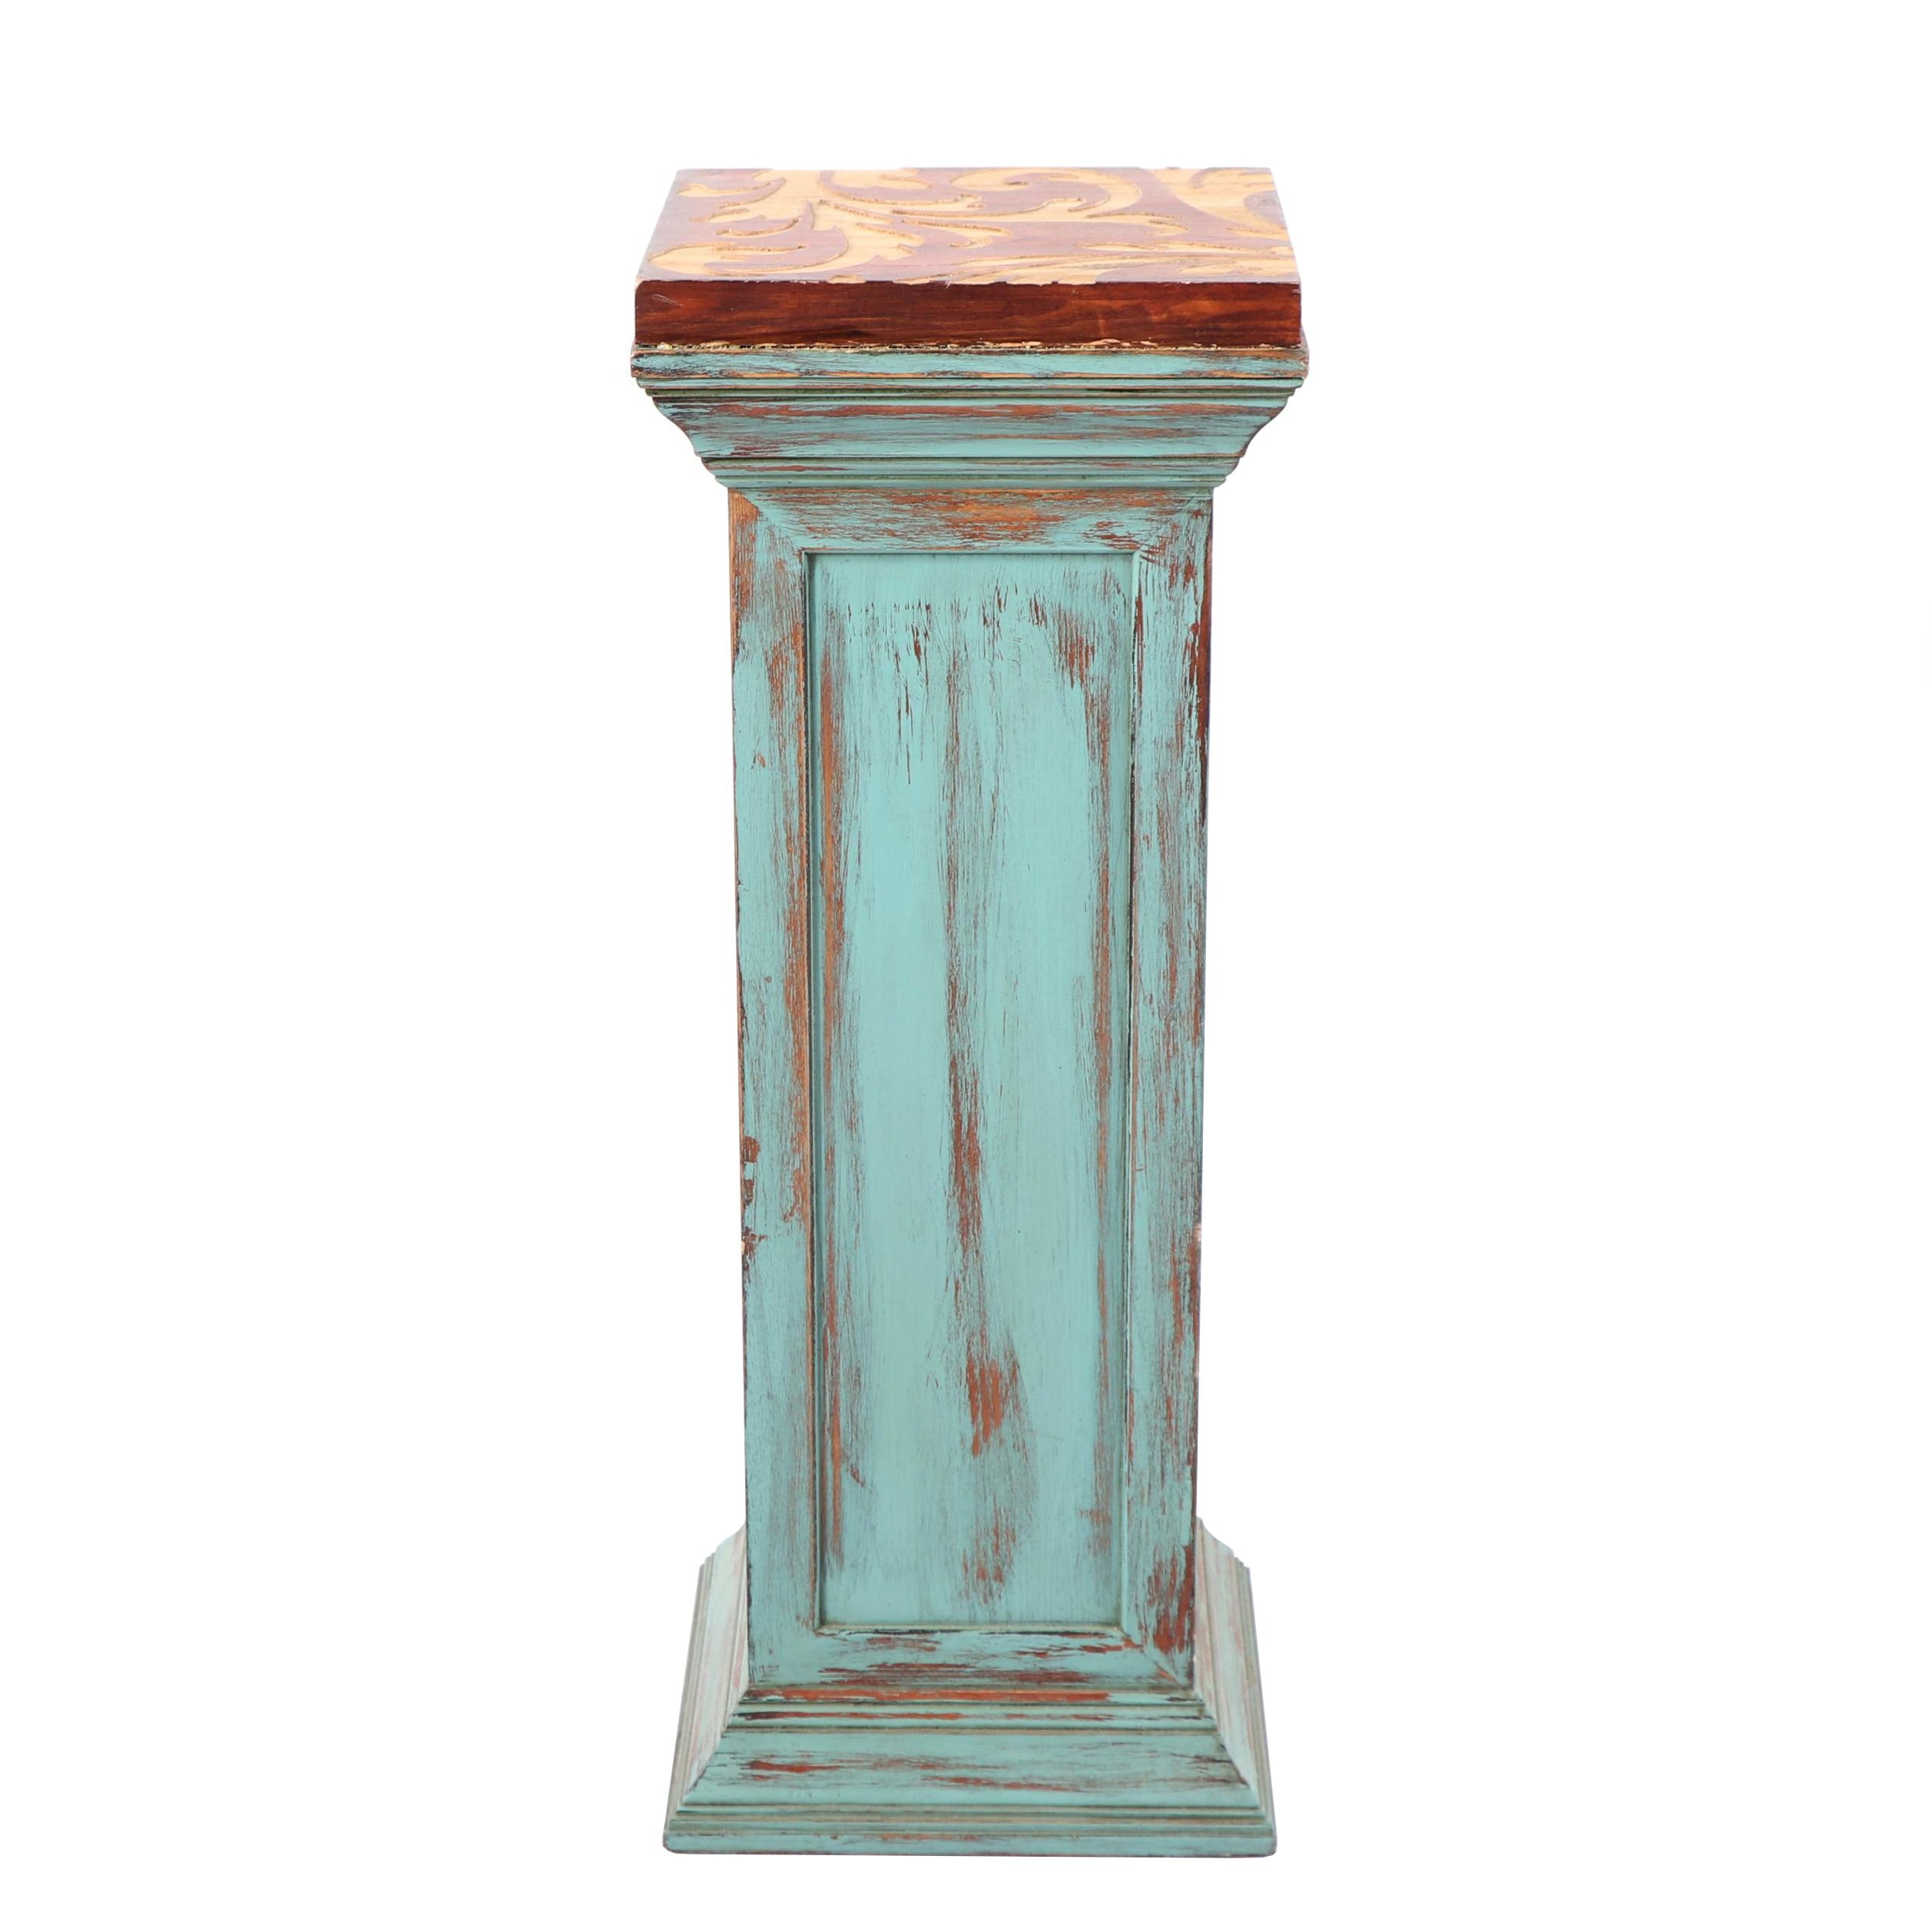 Rustic Wooden Pedestal Plant Stand